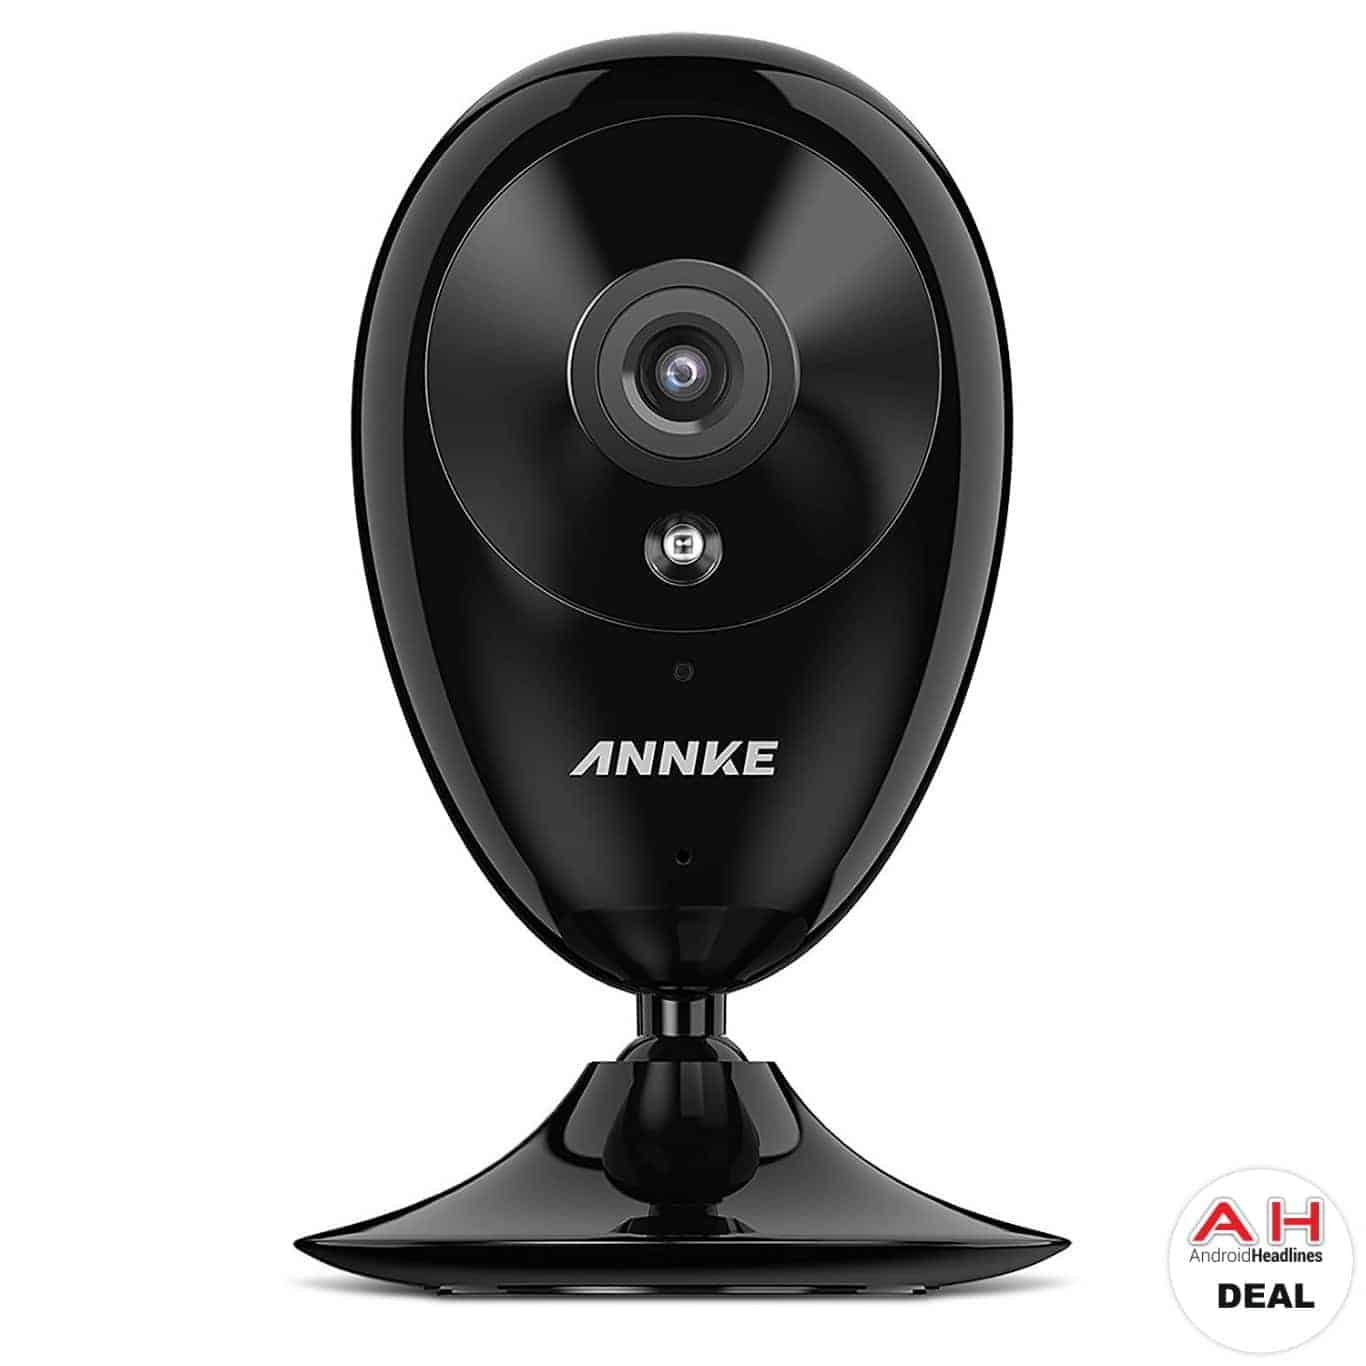 Deal: ANNKE Nova S Wireless Security Camera For $48.99 | Android News